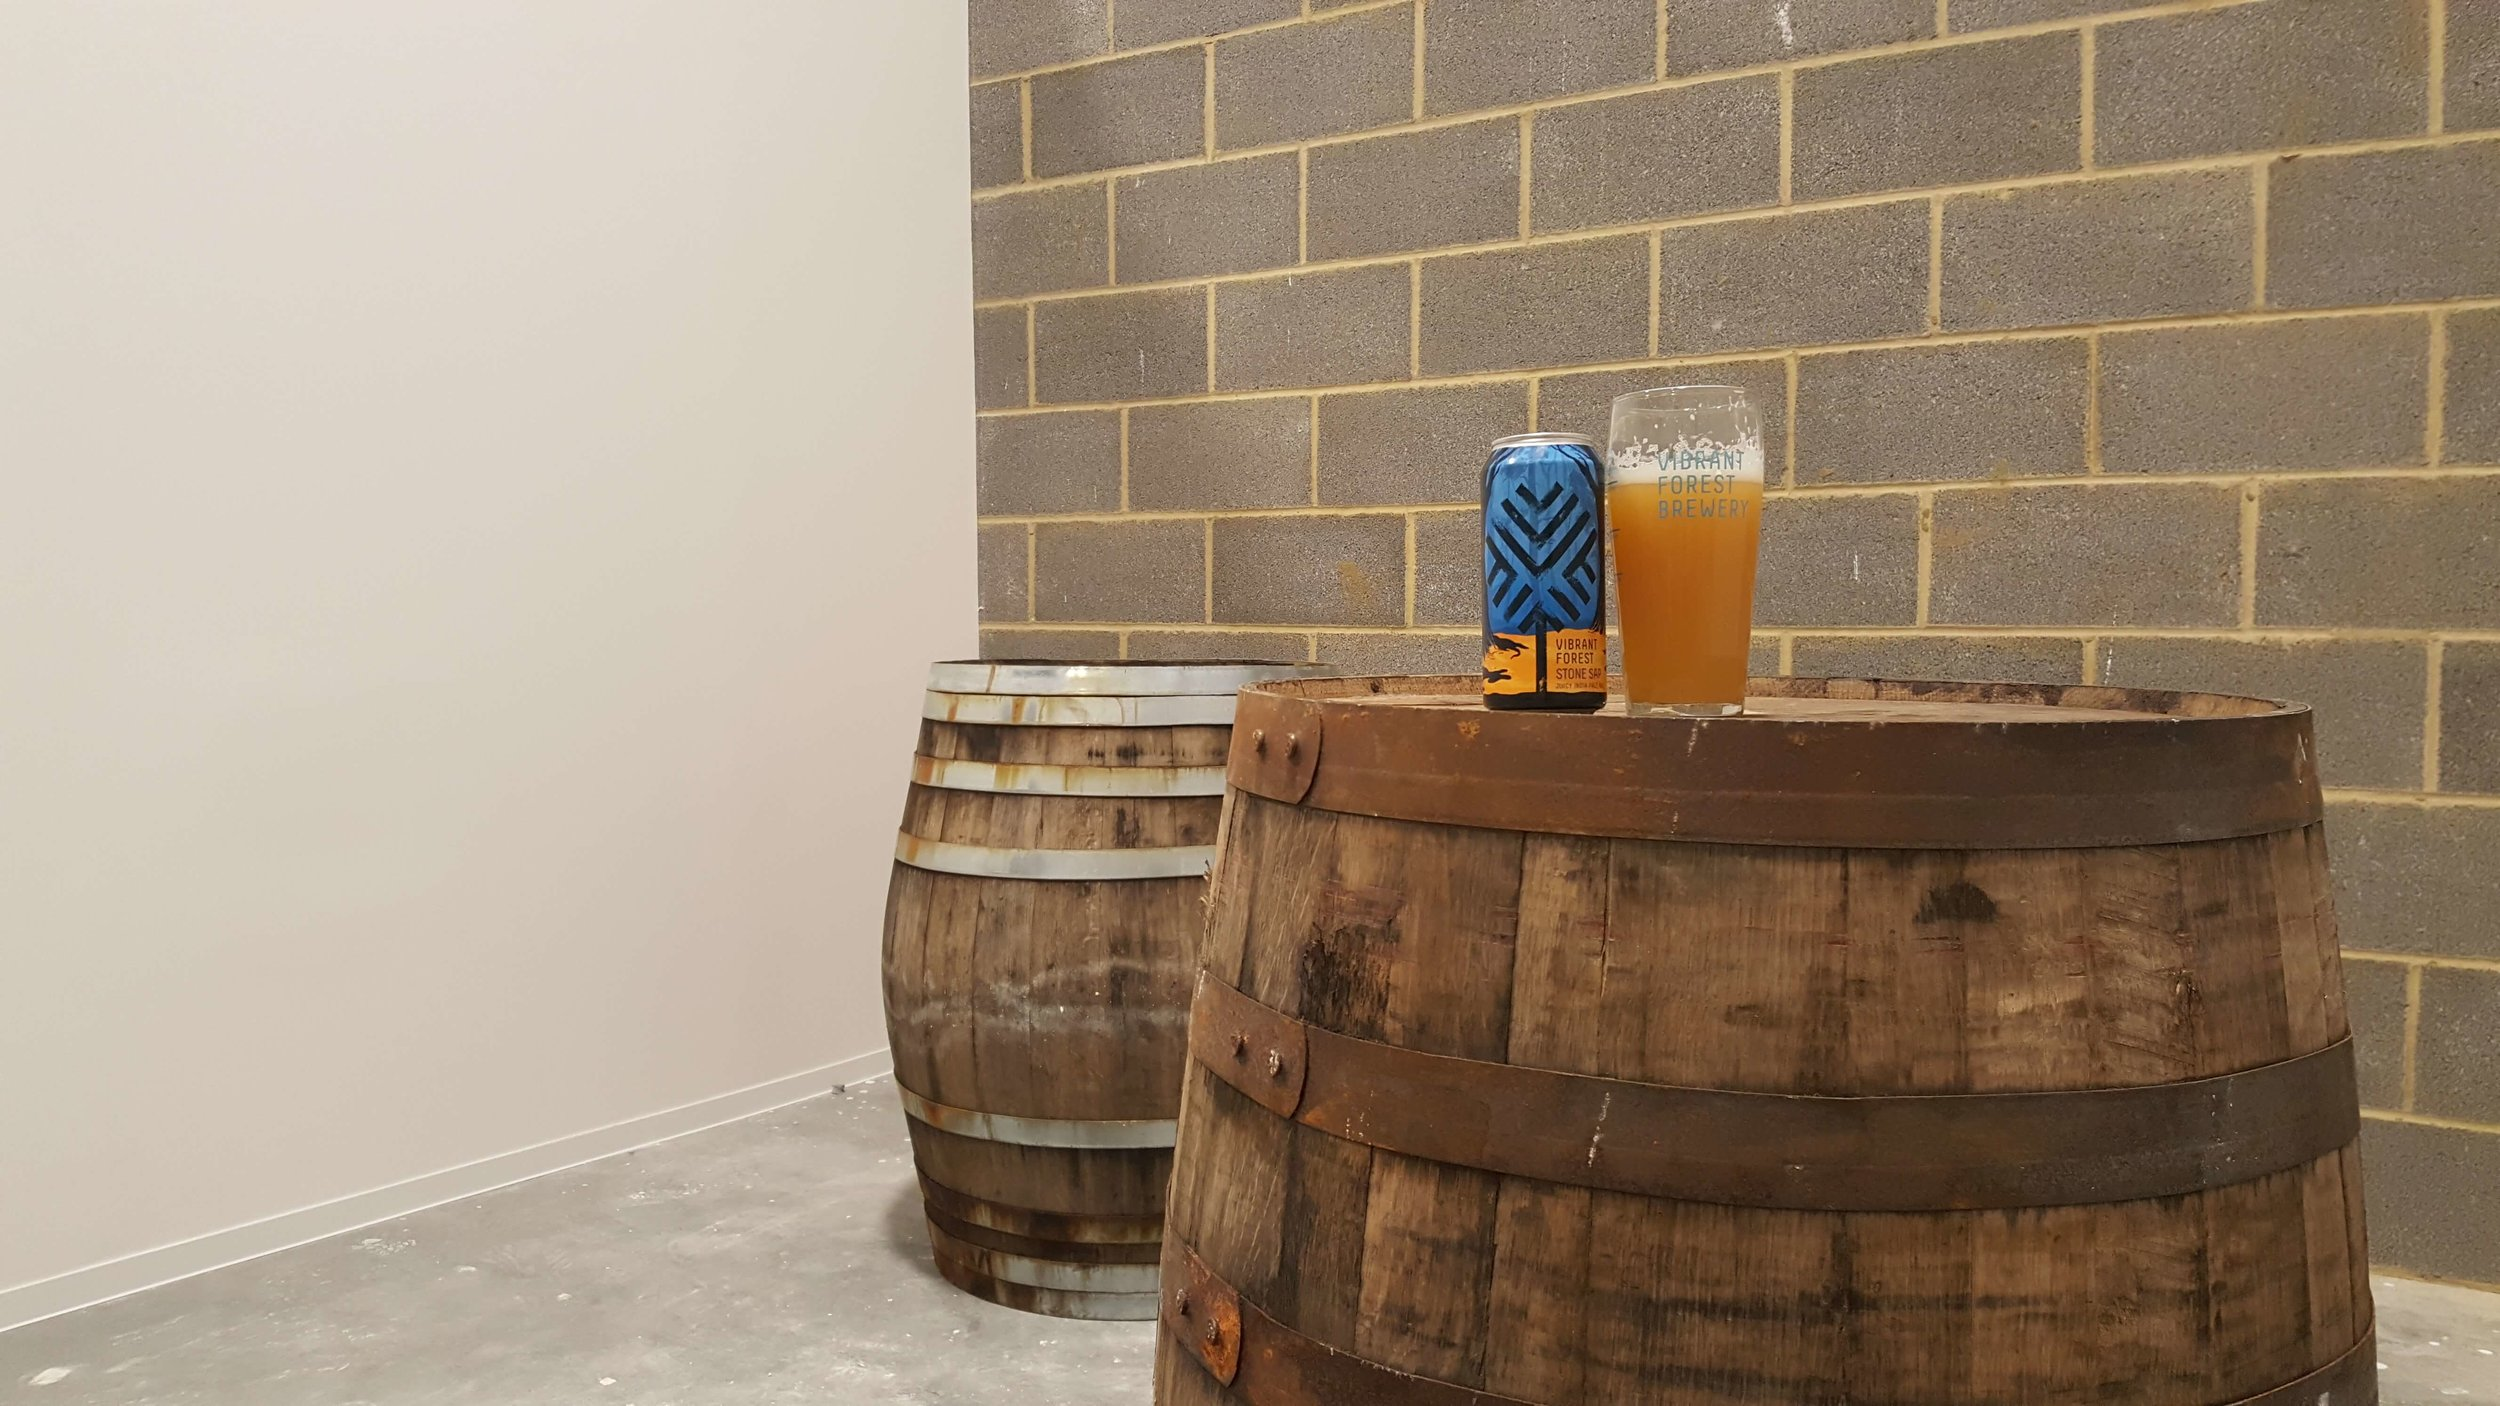 - After a hard day of painting I clearly deserved the first beer in our future taproom!